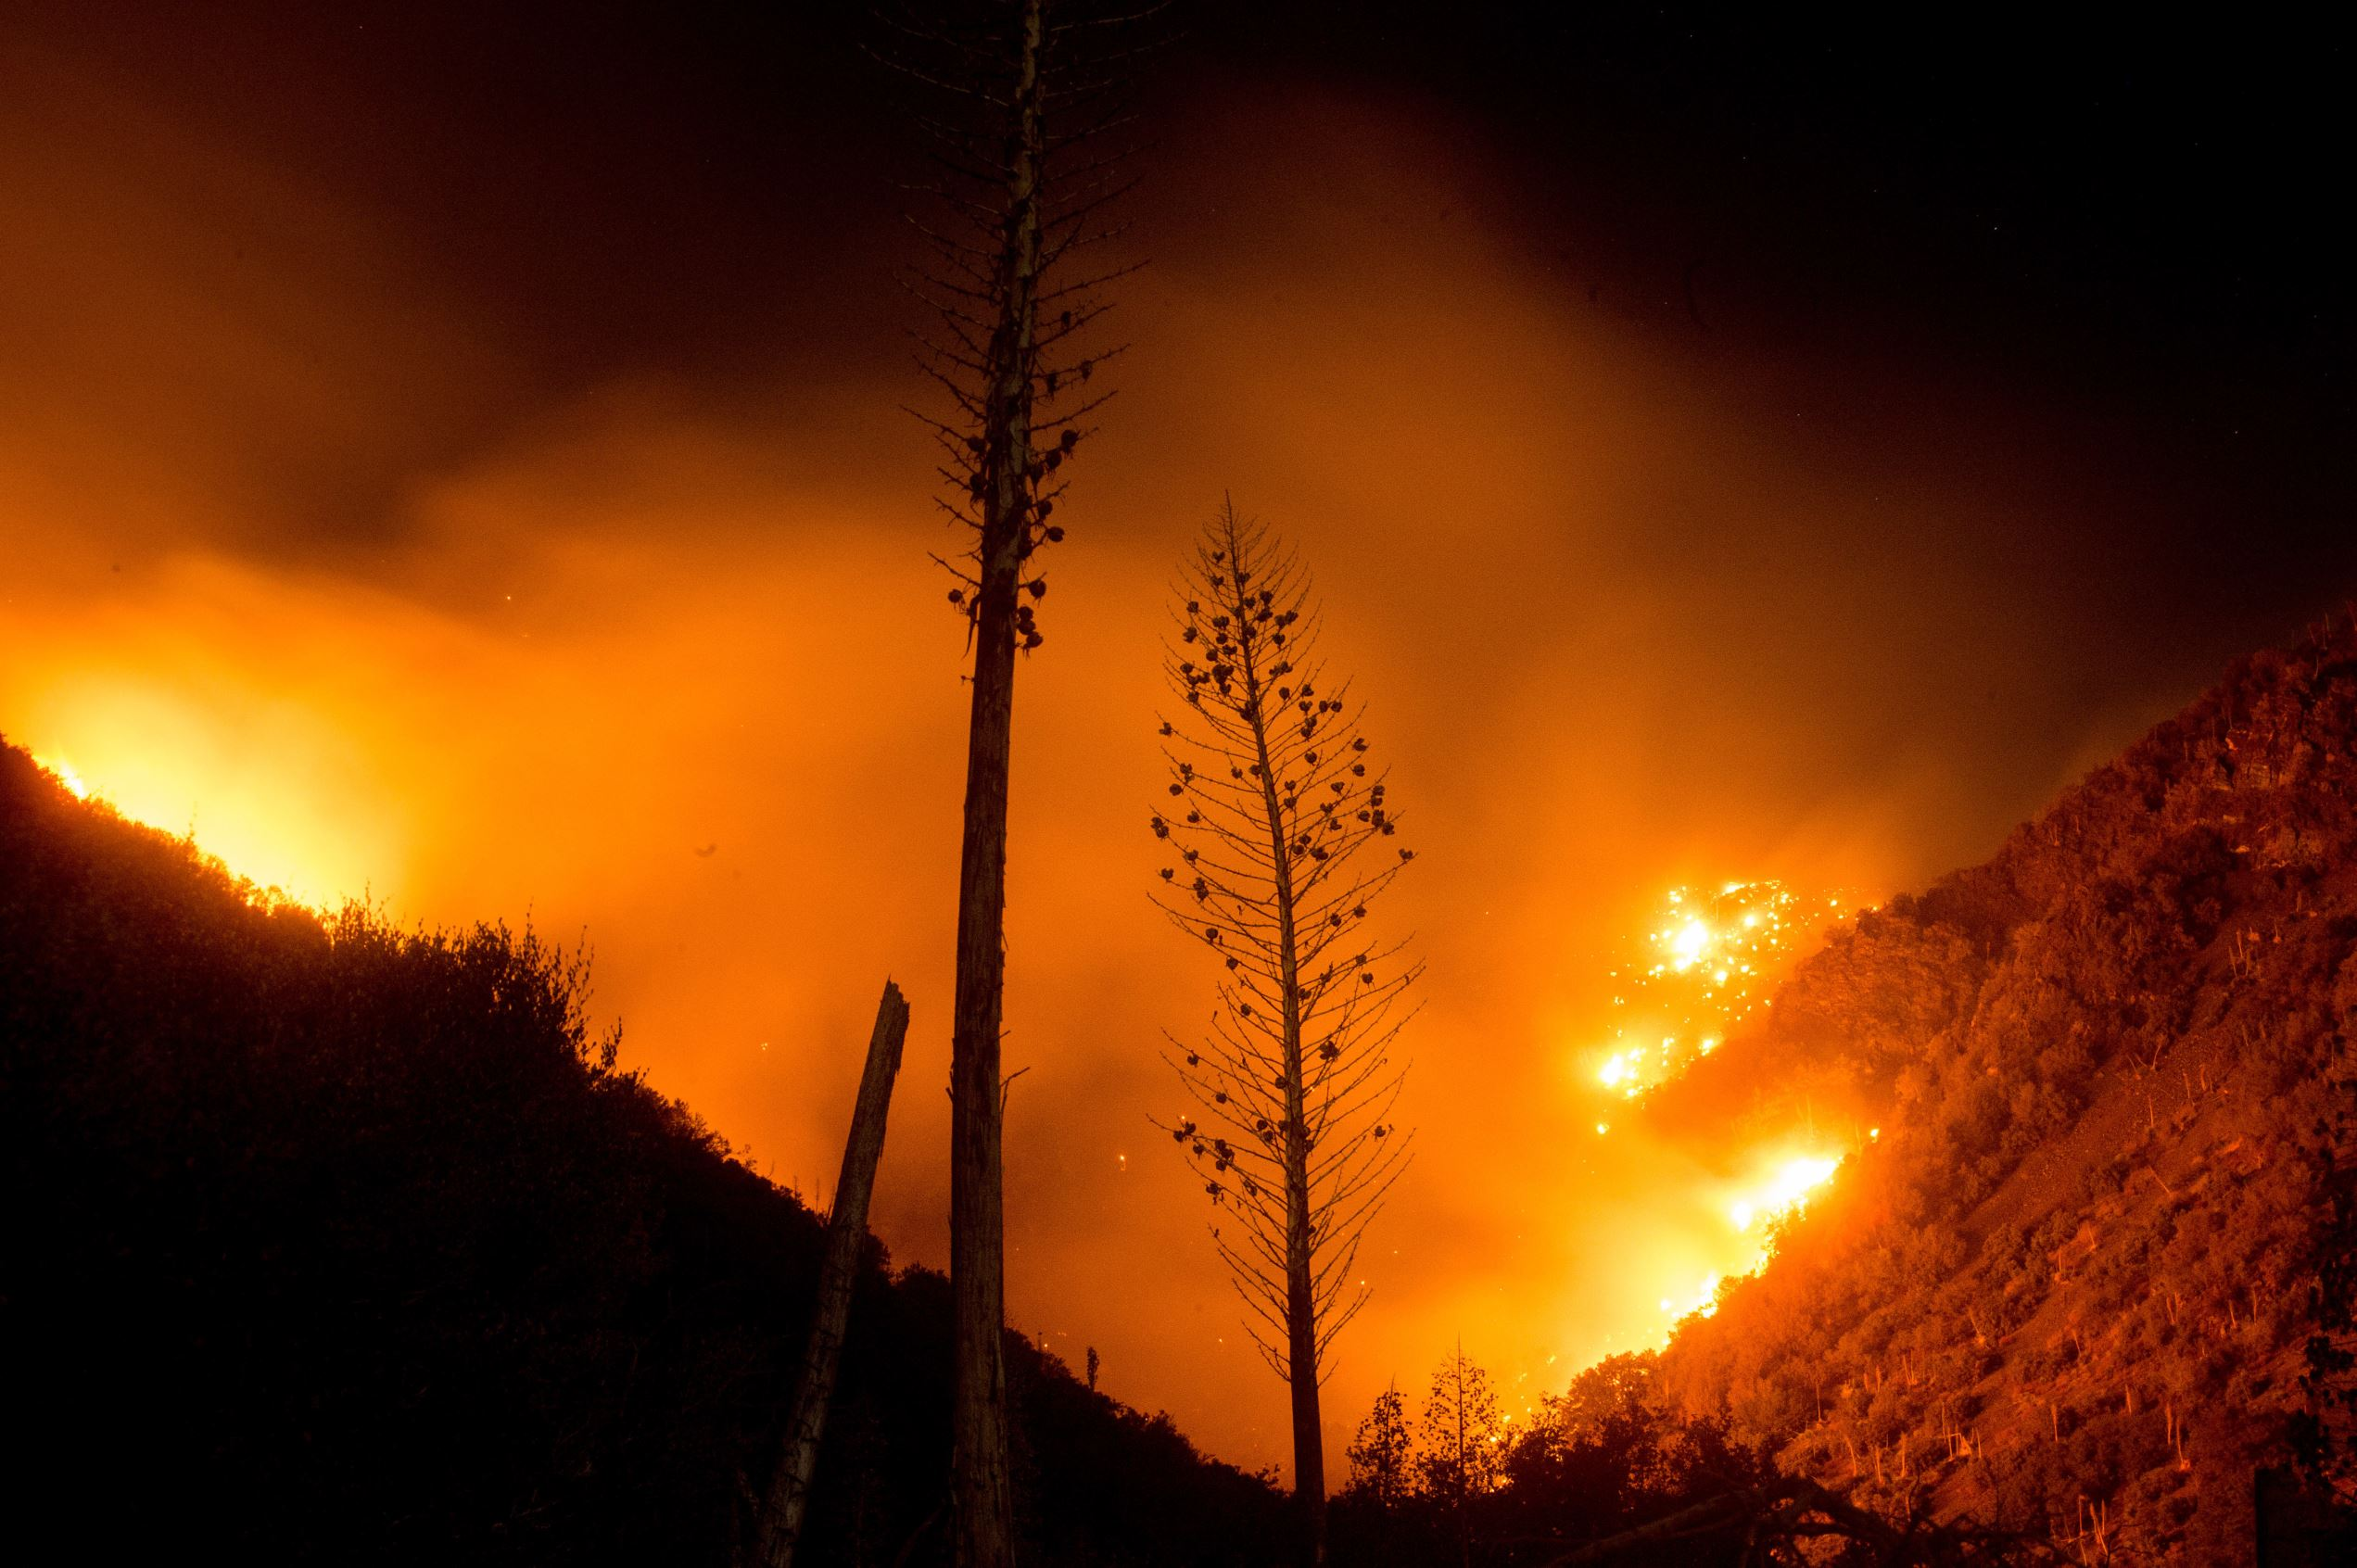 Слайд 74 из 86: The Blue Cut fire burns in Upper Lytle Creek near Wrightwood, Calif., Friday, Aug. 19, 2016. Firefighters were on the offensive Friday as they worked to expand significant gains against a huge wildfire that chased thousands of people from their homes in Southern California. (AP Photo/Noah Berger)